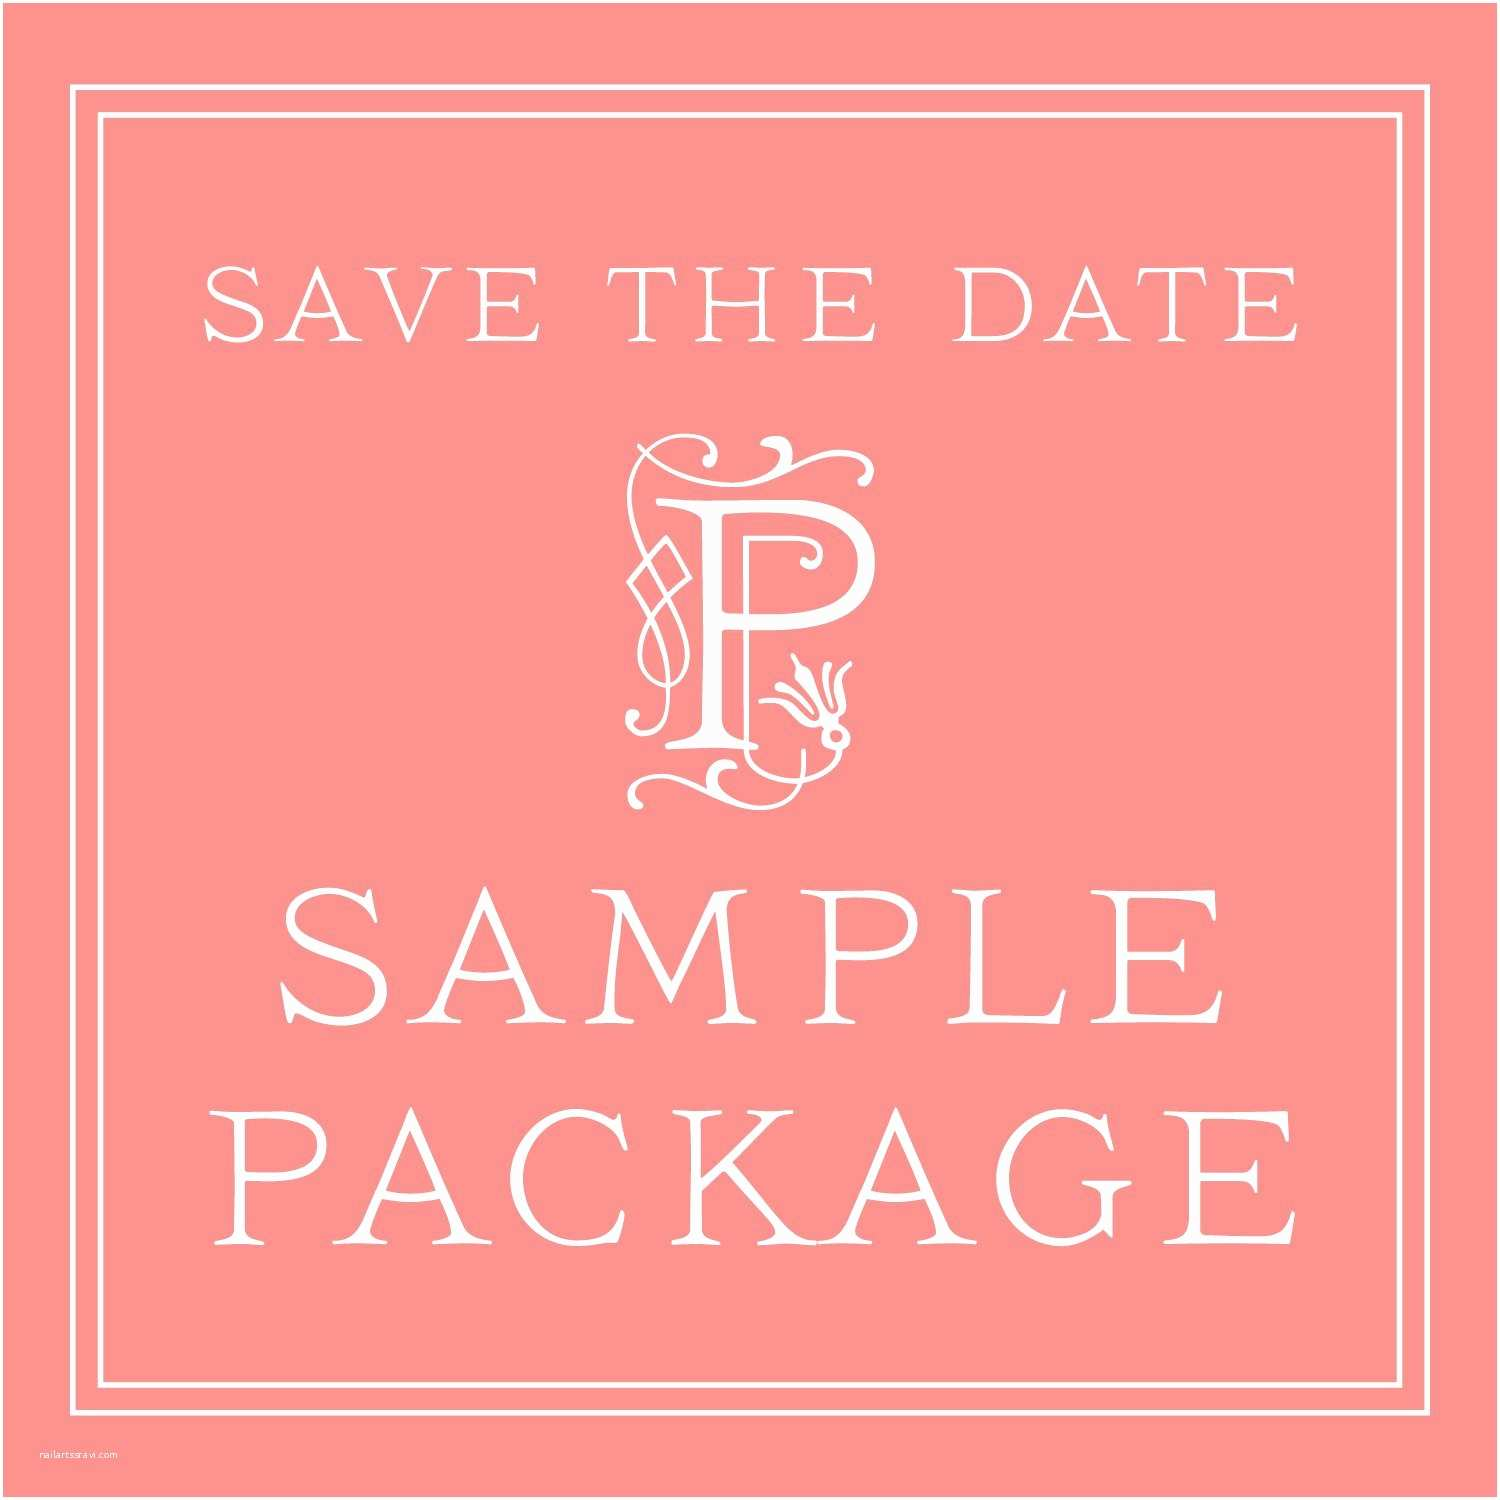 Cheap Wedding Invitations and Save the Dates Packages Wedding Save the Date Sample Package – Classic Save the